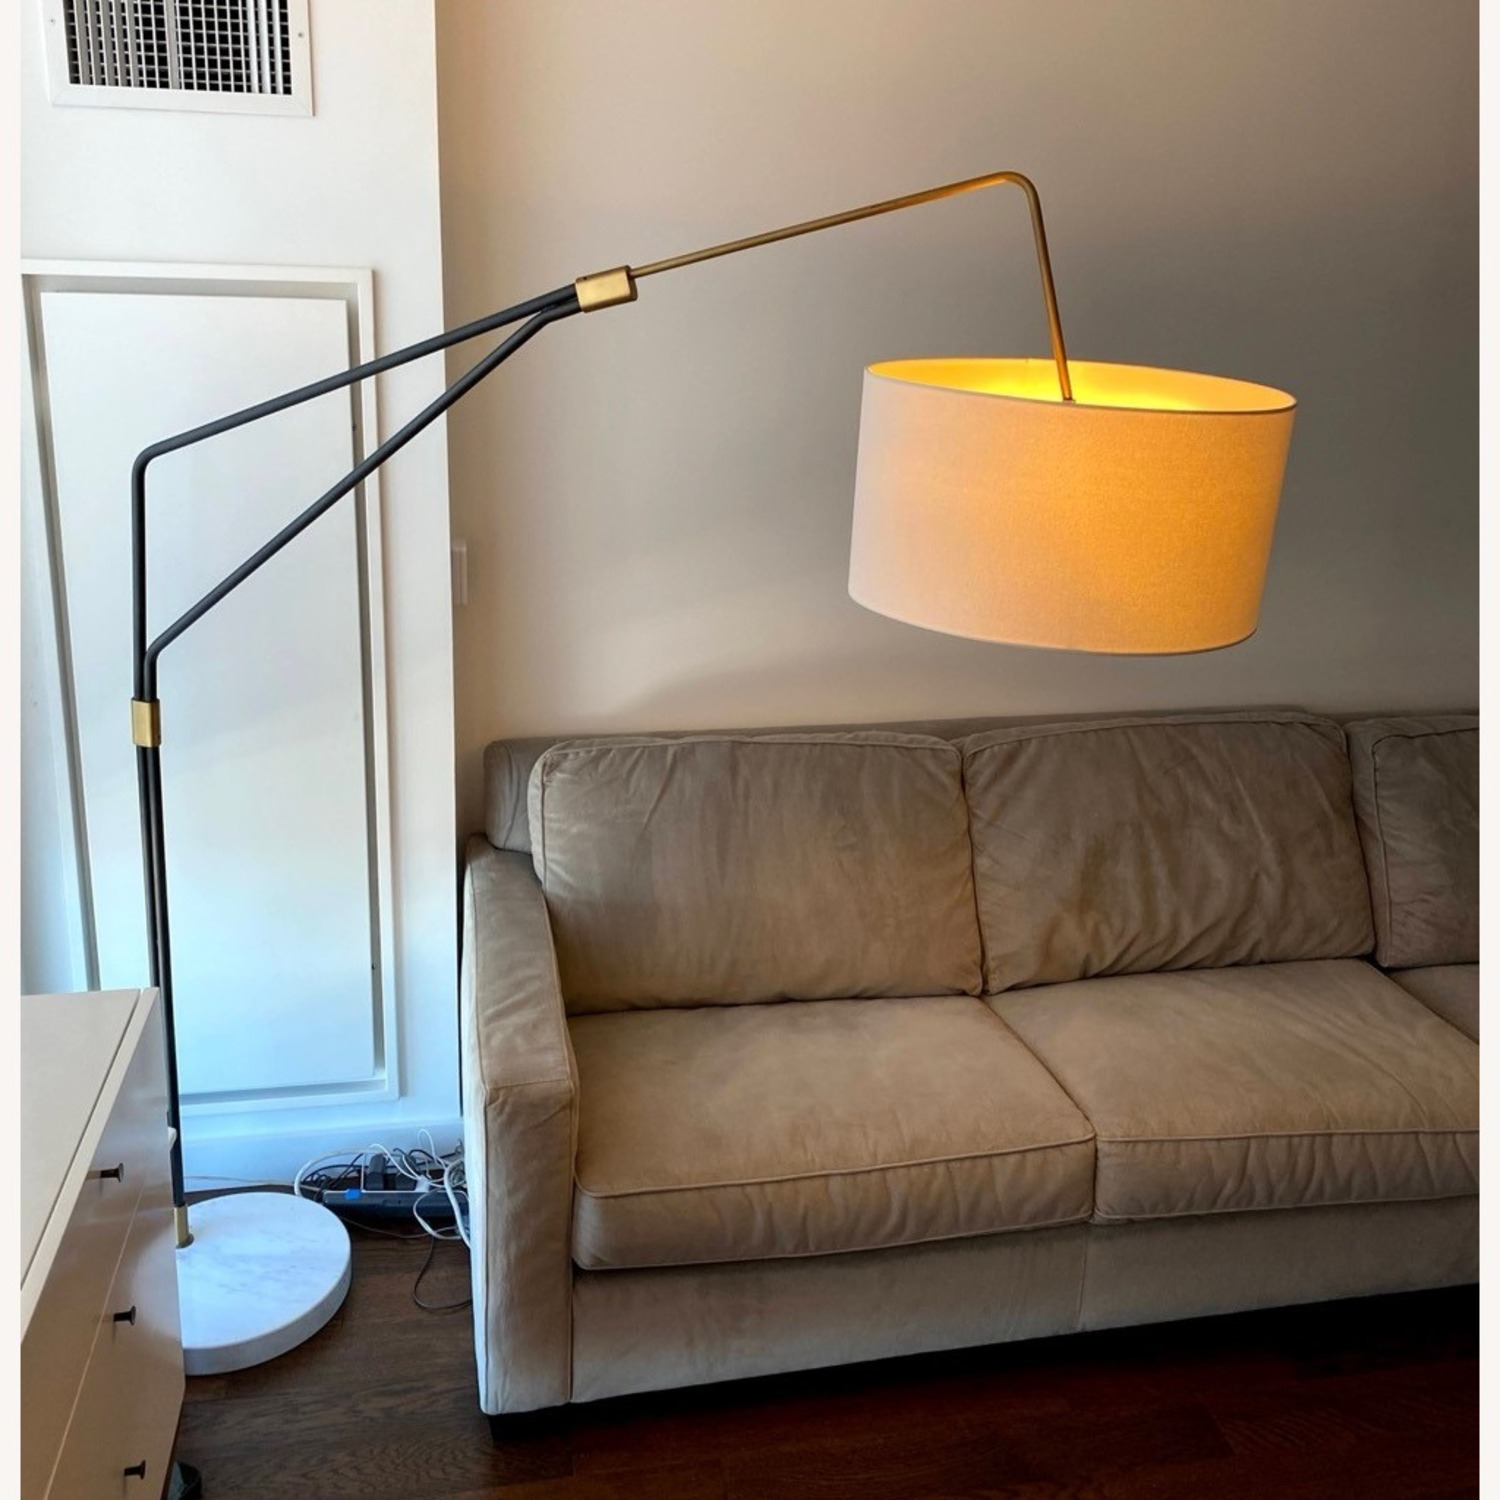 Modern Arc Floor Lamp with Marble Base - image-1